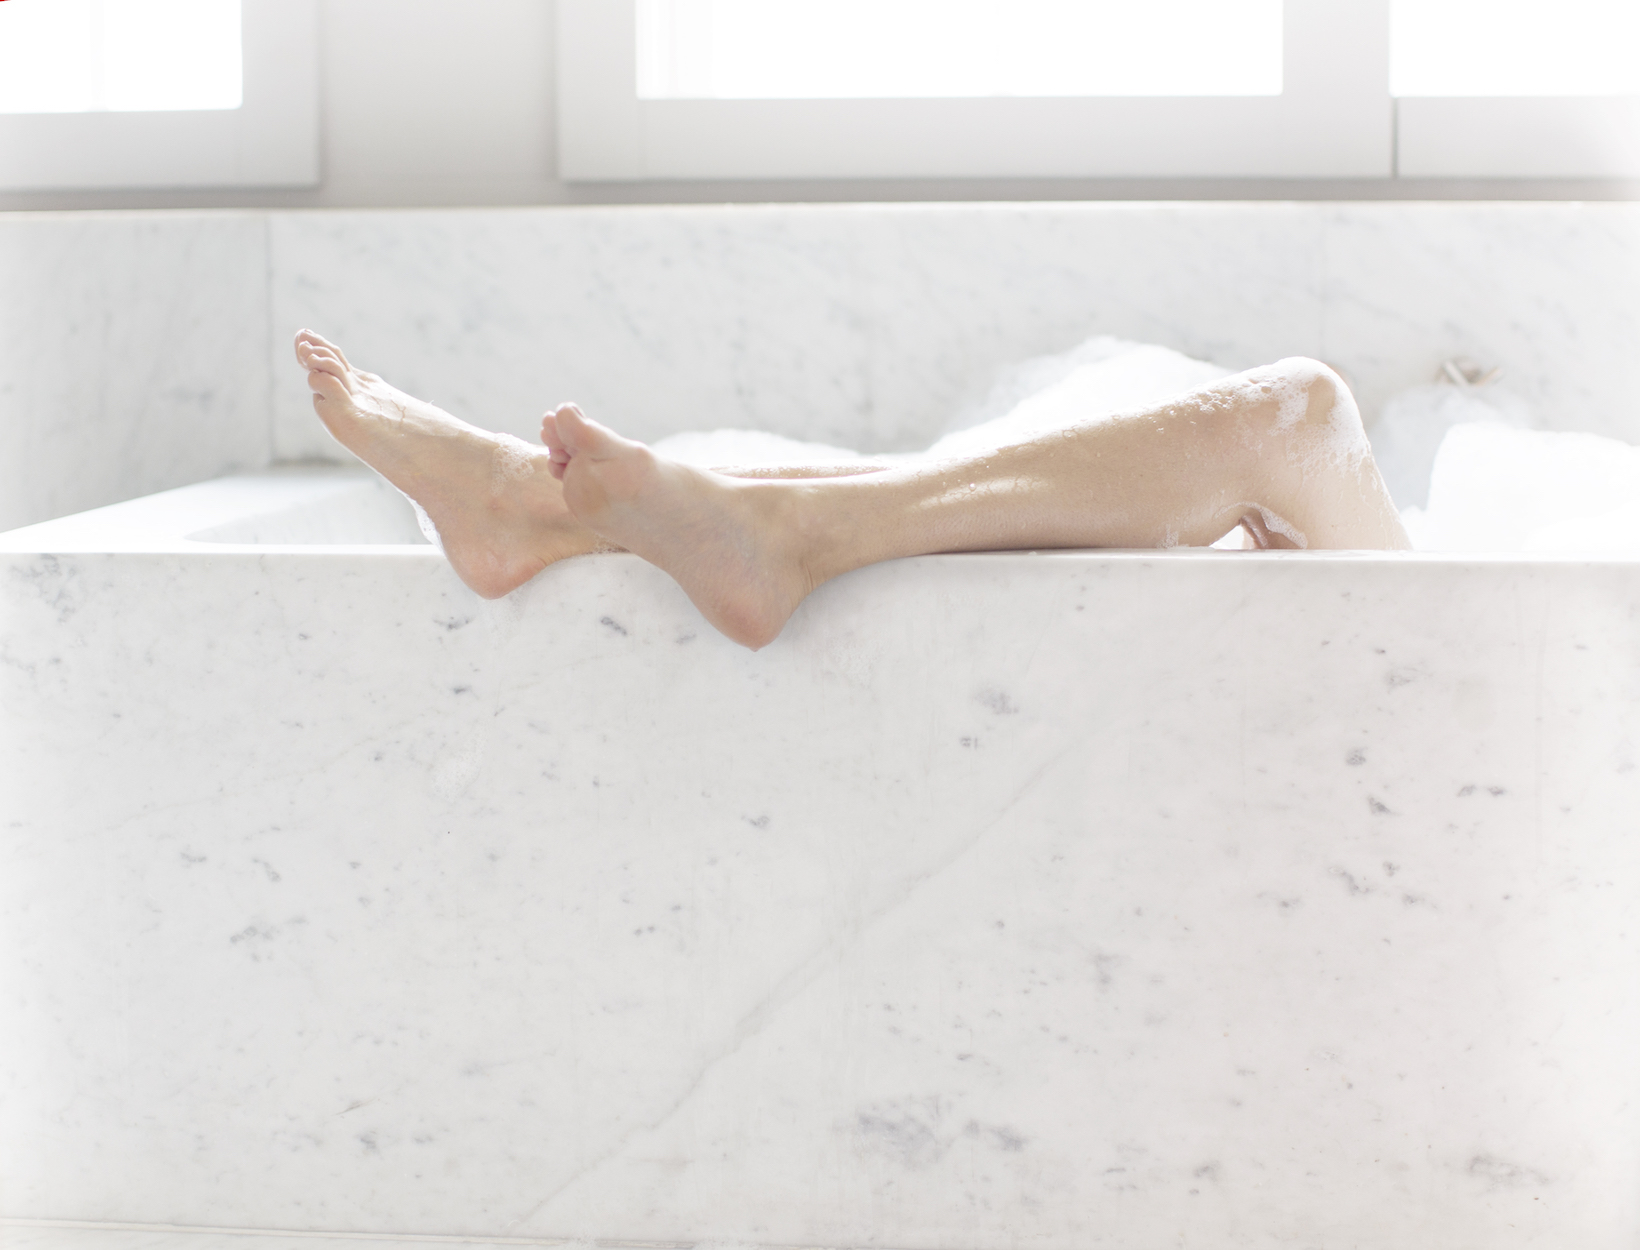 The Ultimate Bath Detox